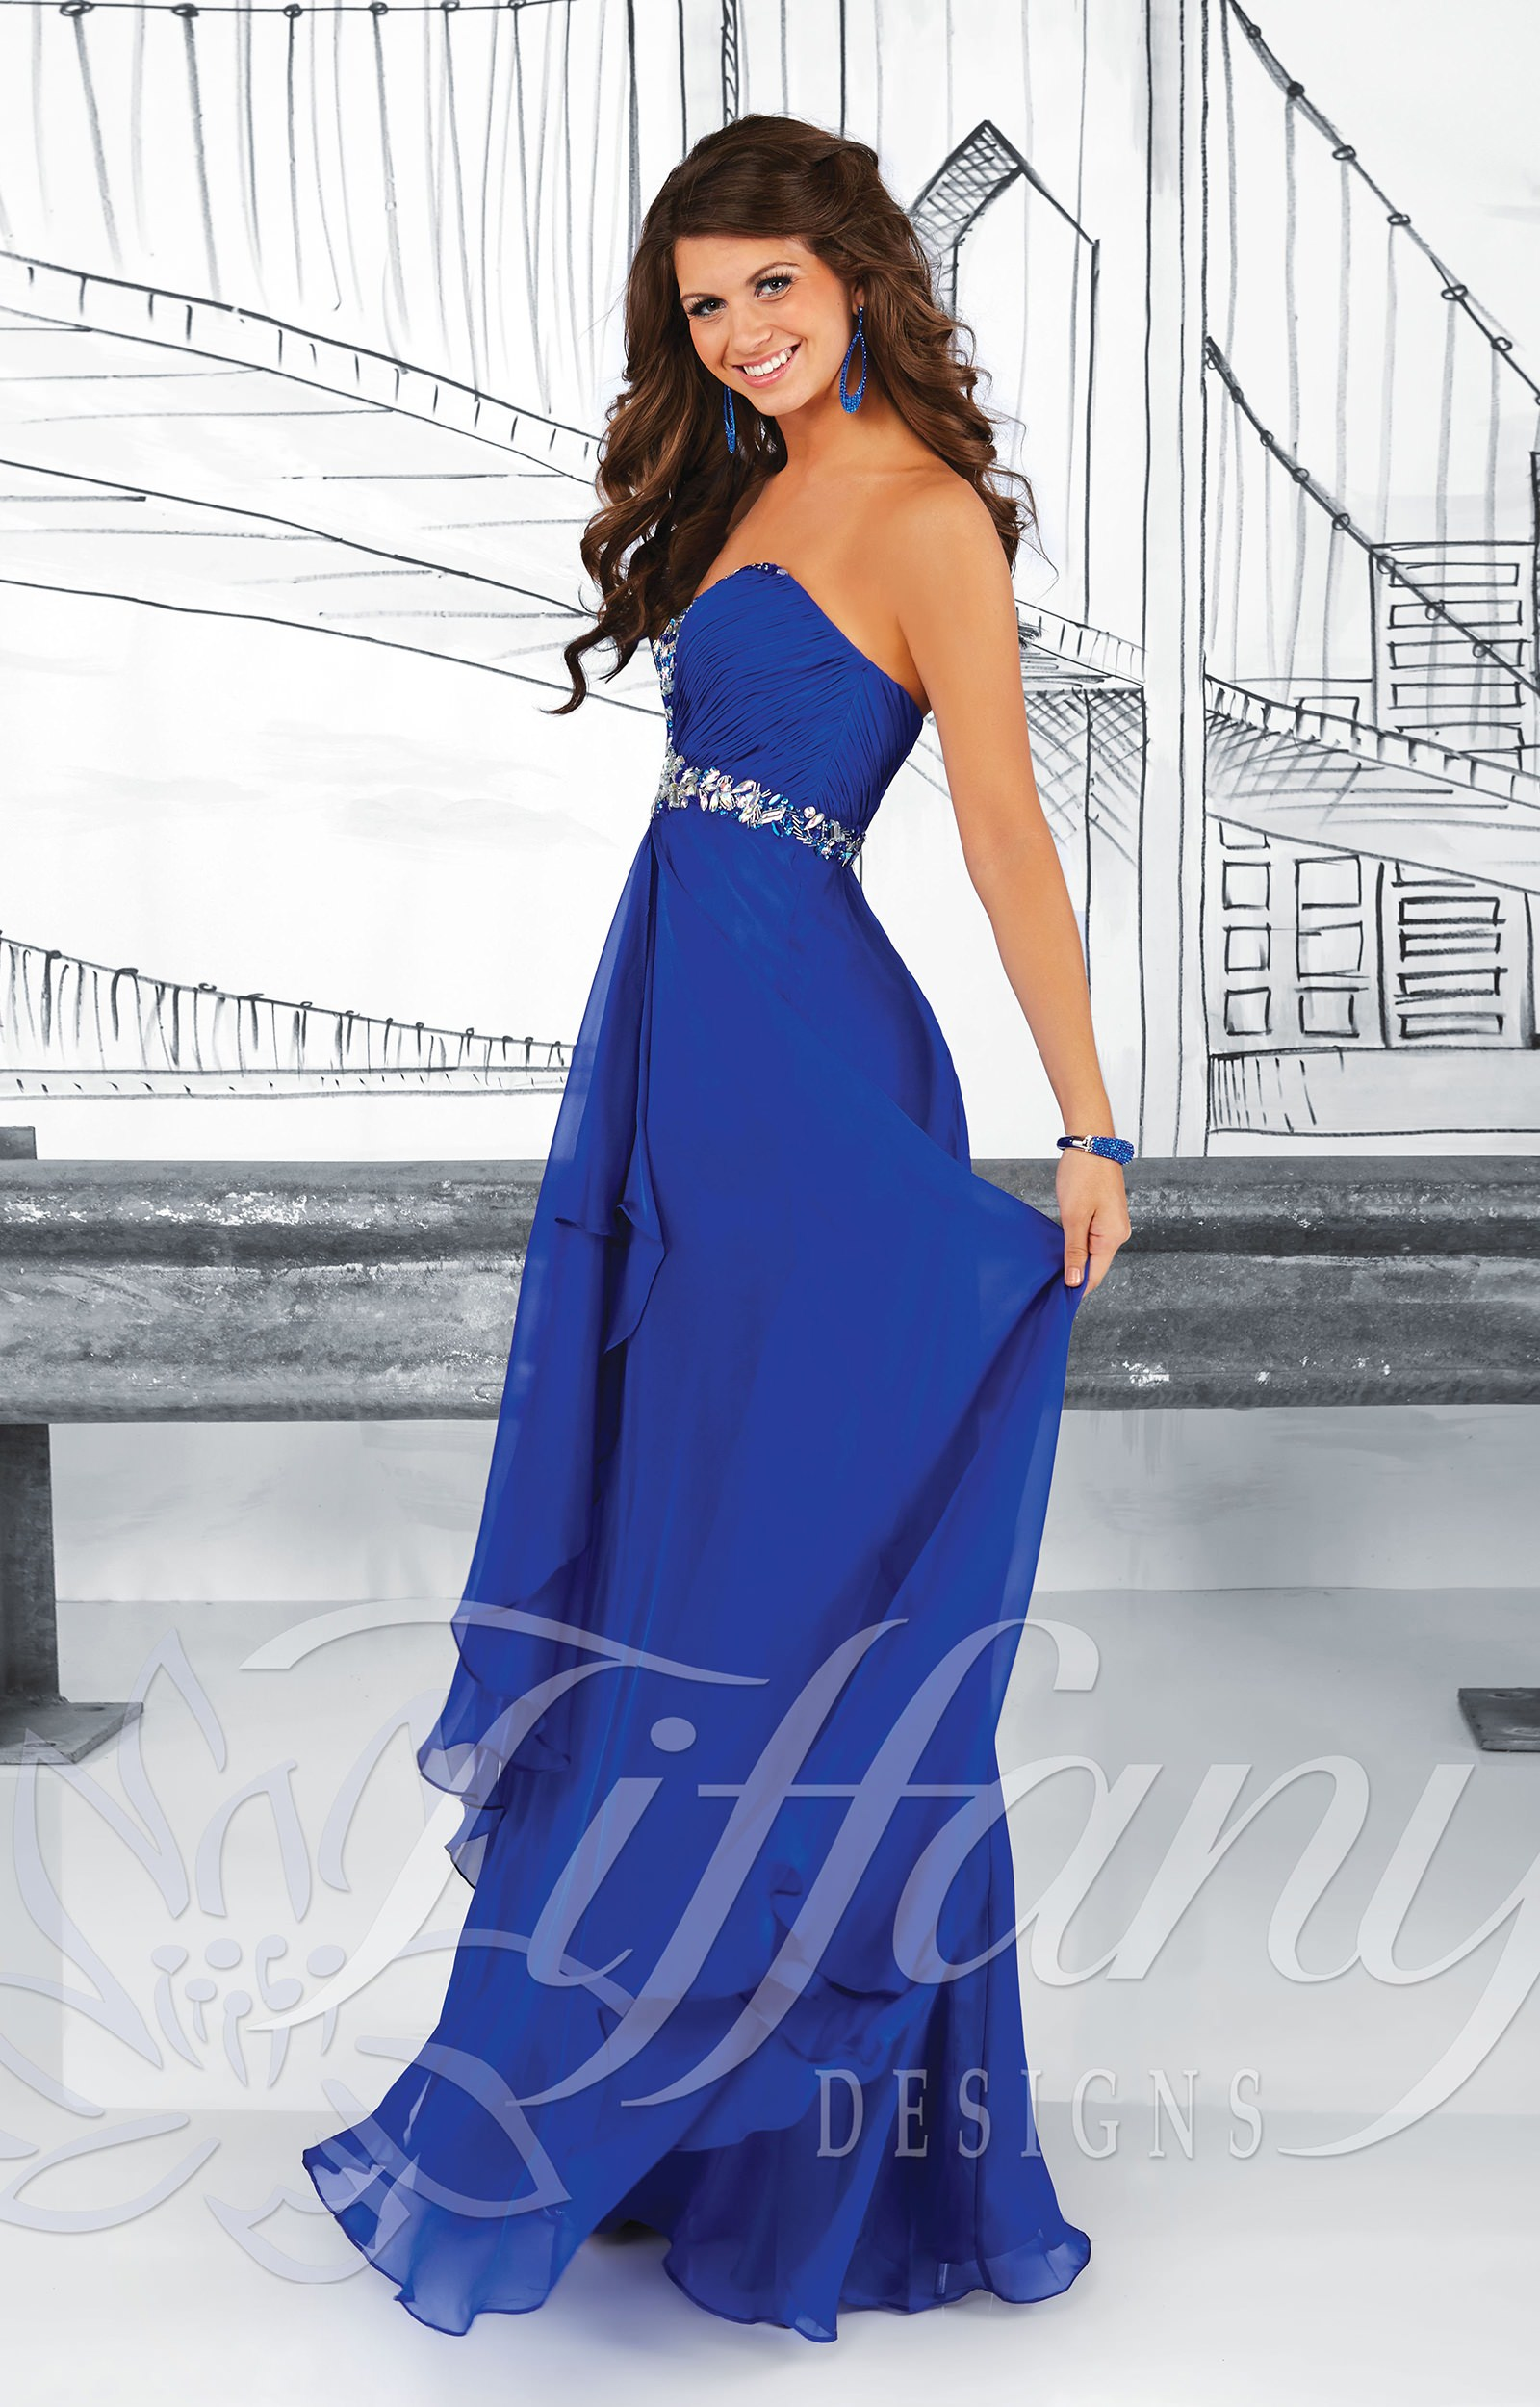 Tiffany Designs 16012 - Sassy Sweetheart Gown Prom Dress